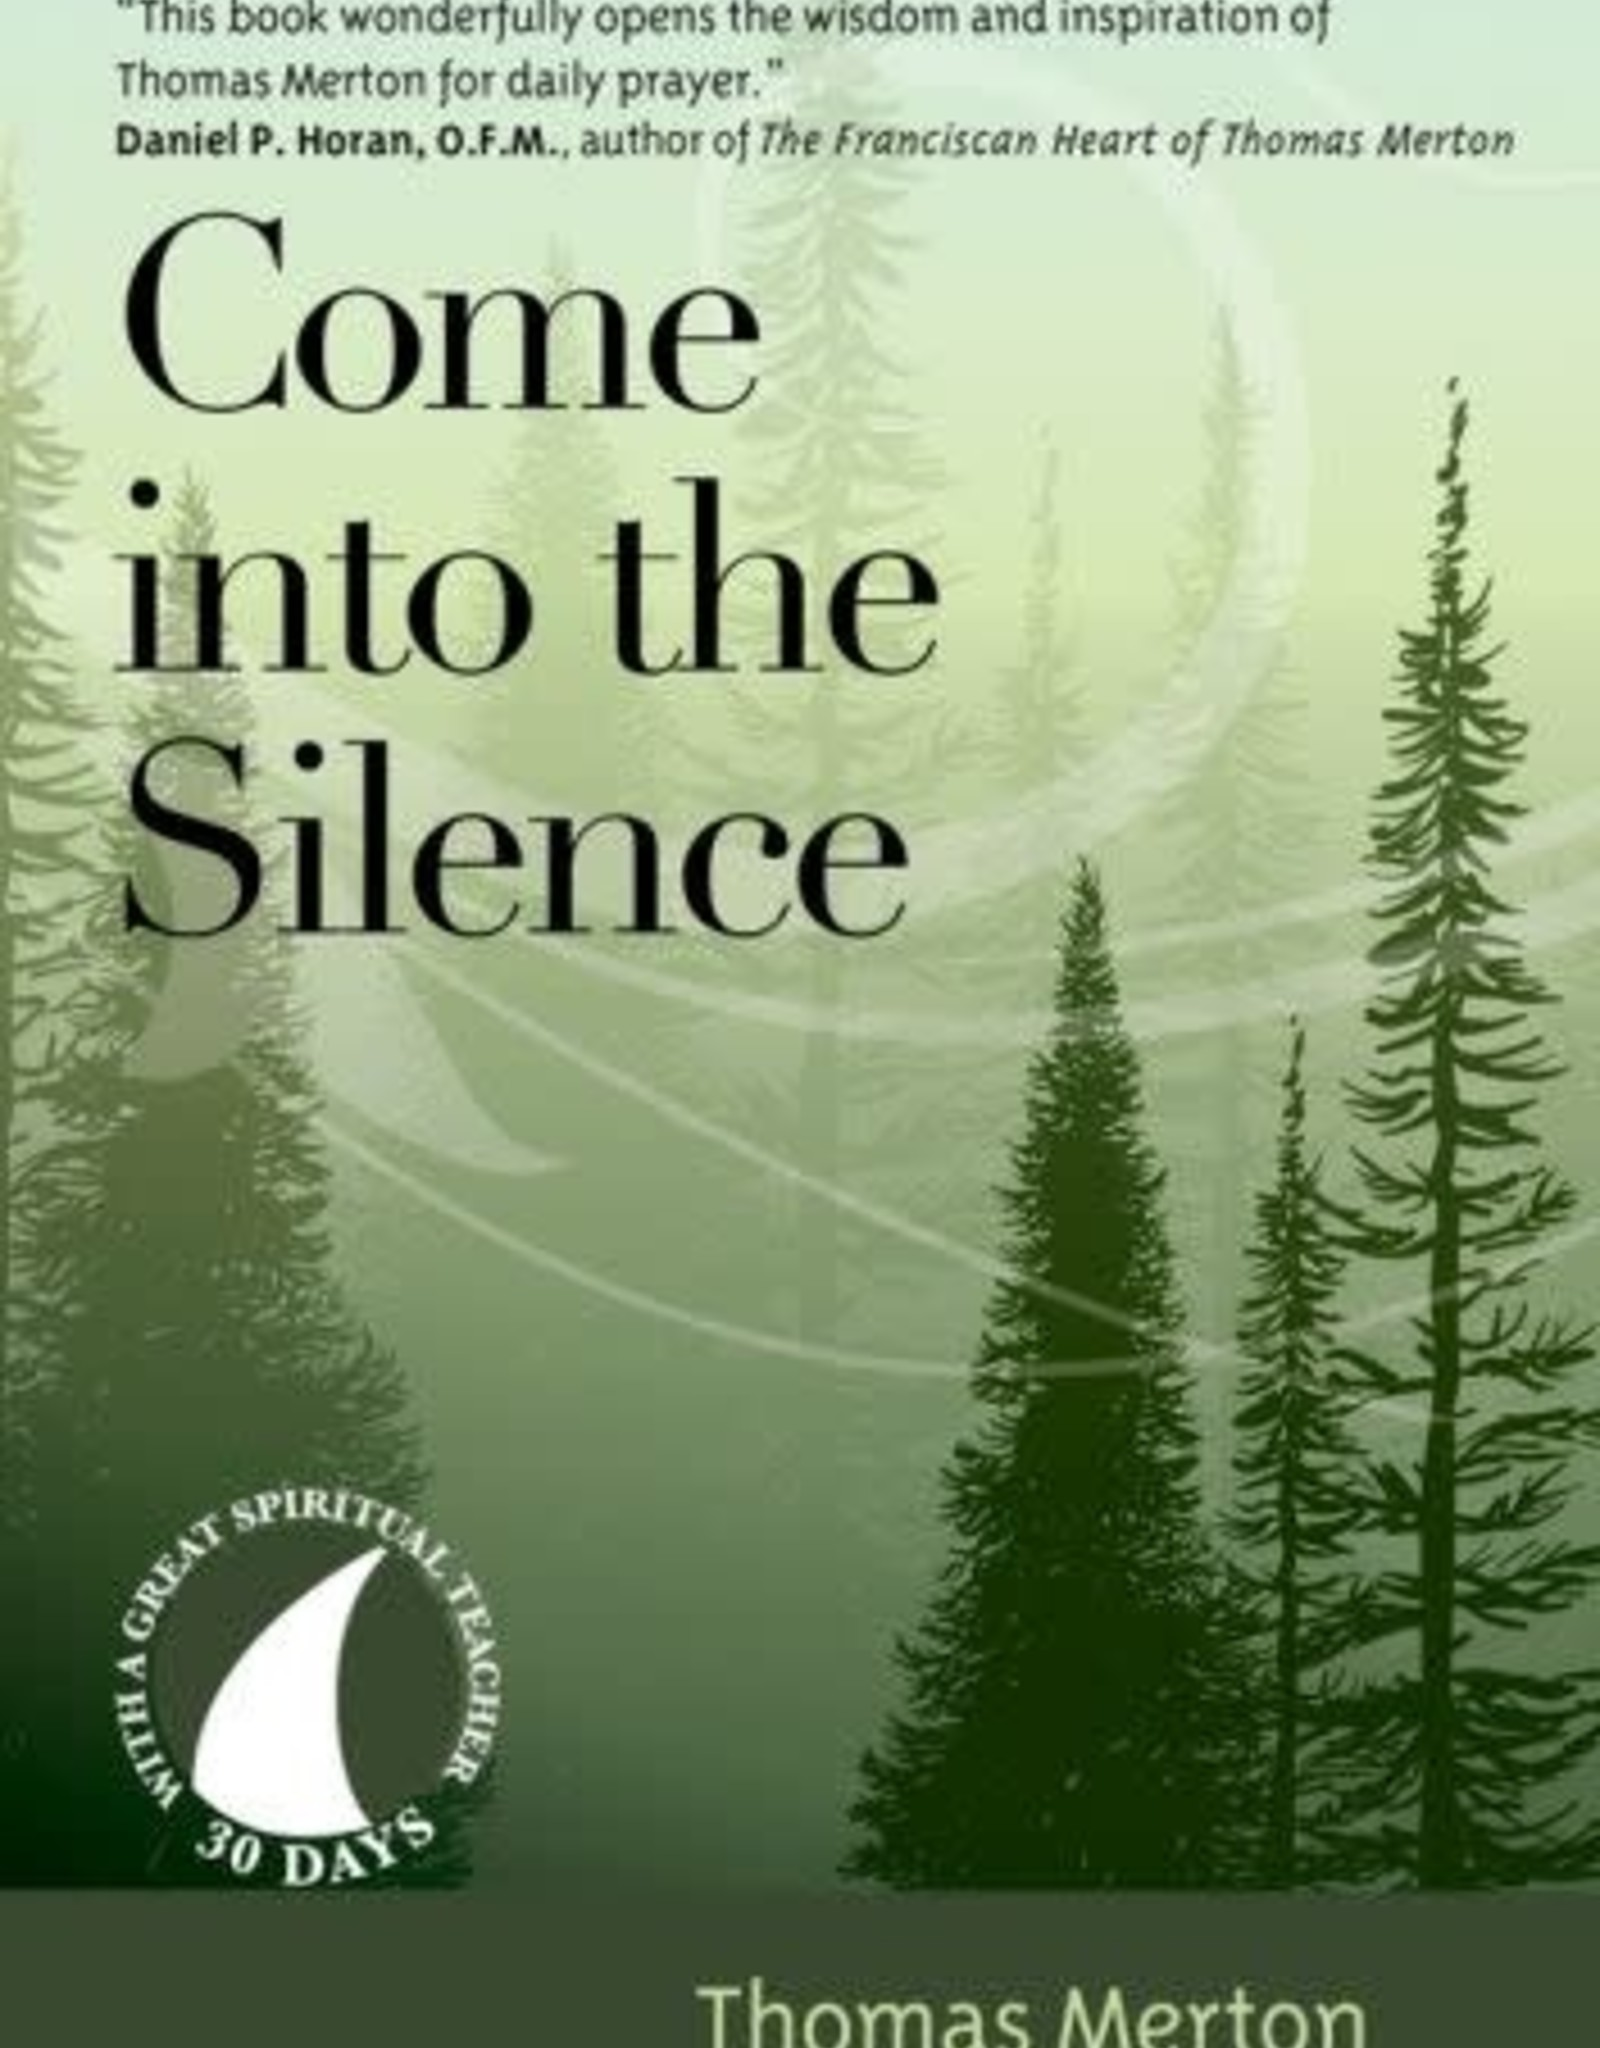 Come into the Silence, by Thomas Merton (paperback)